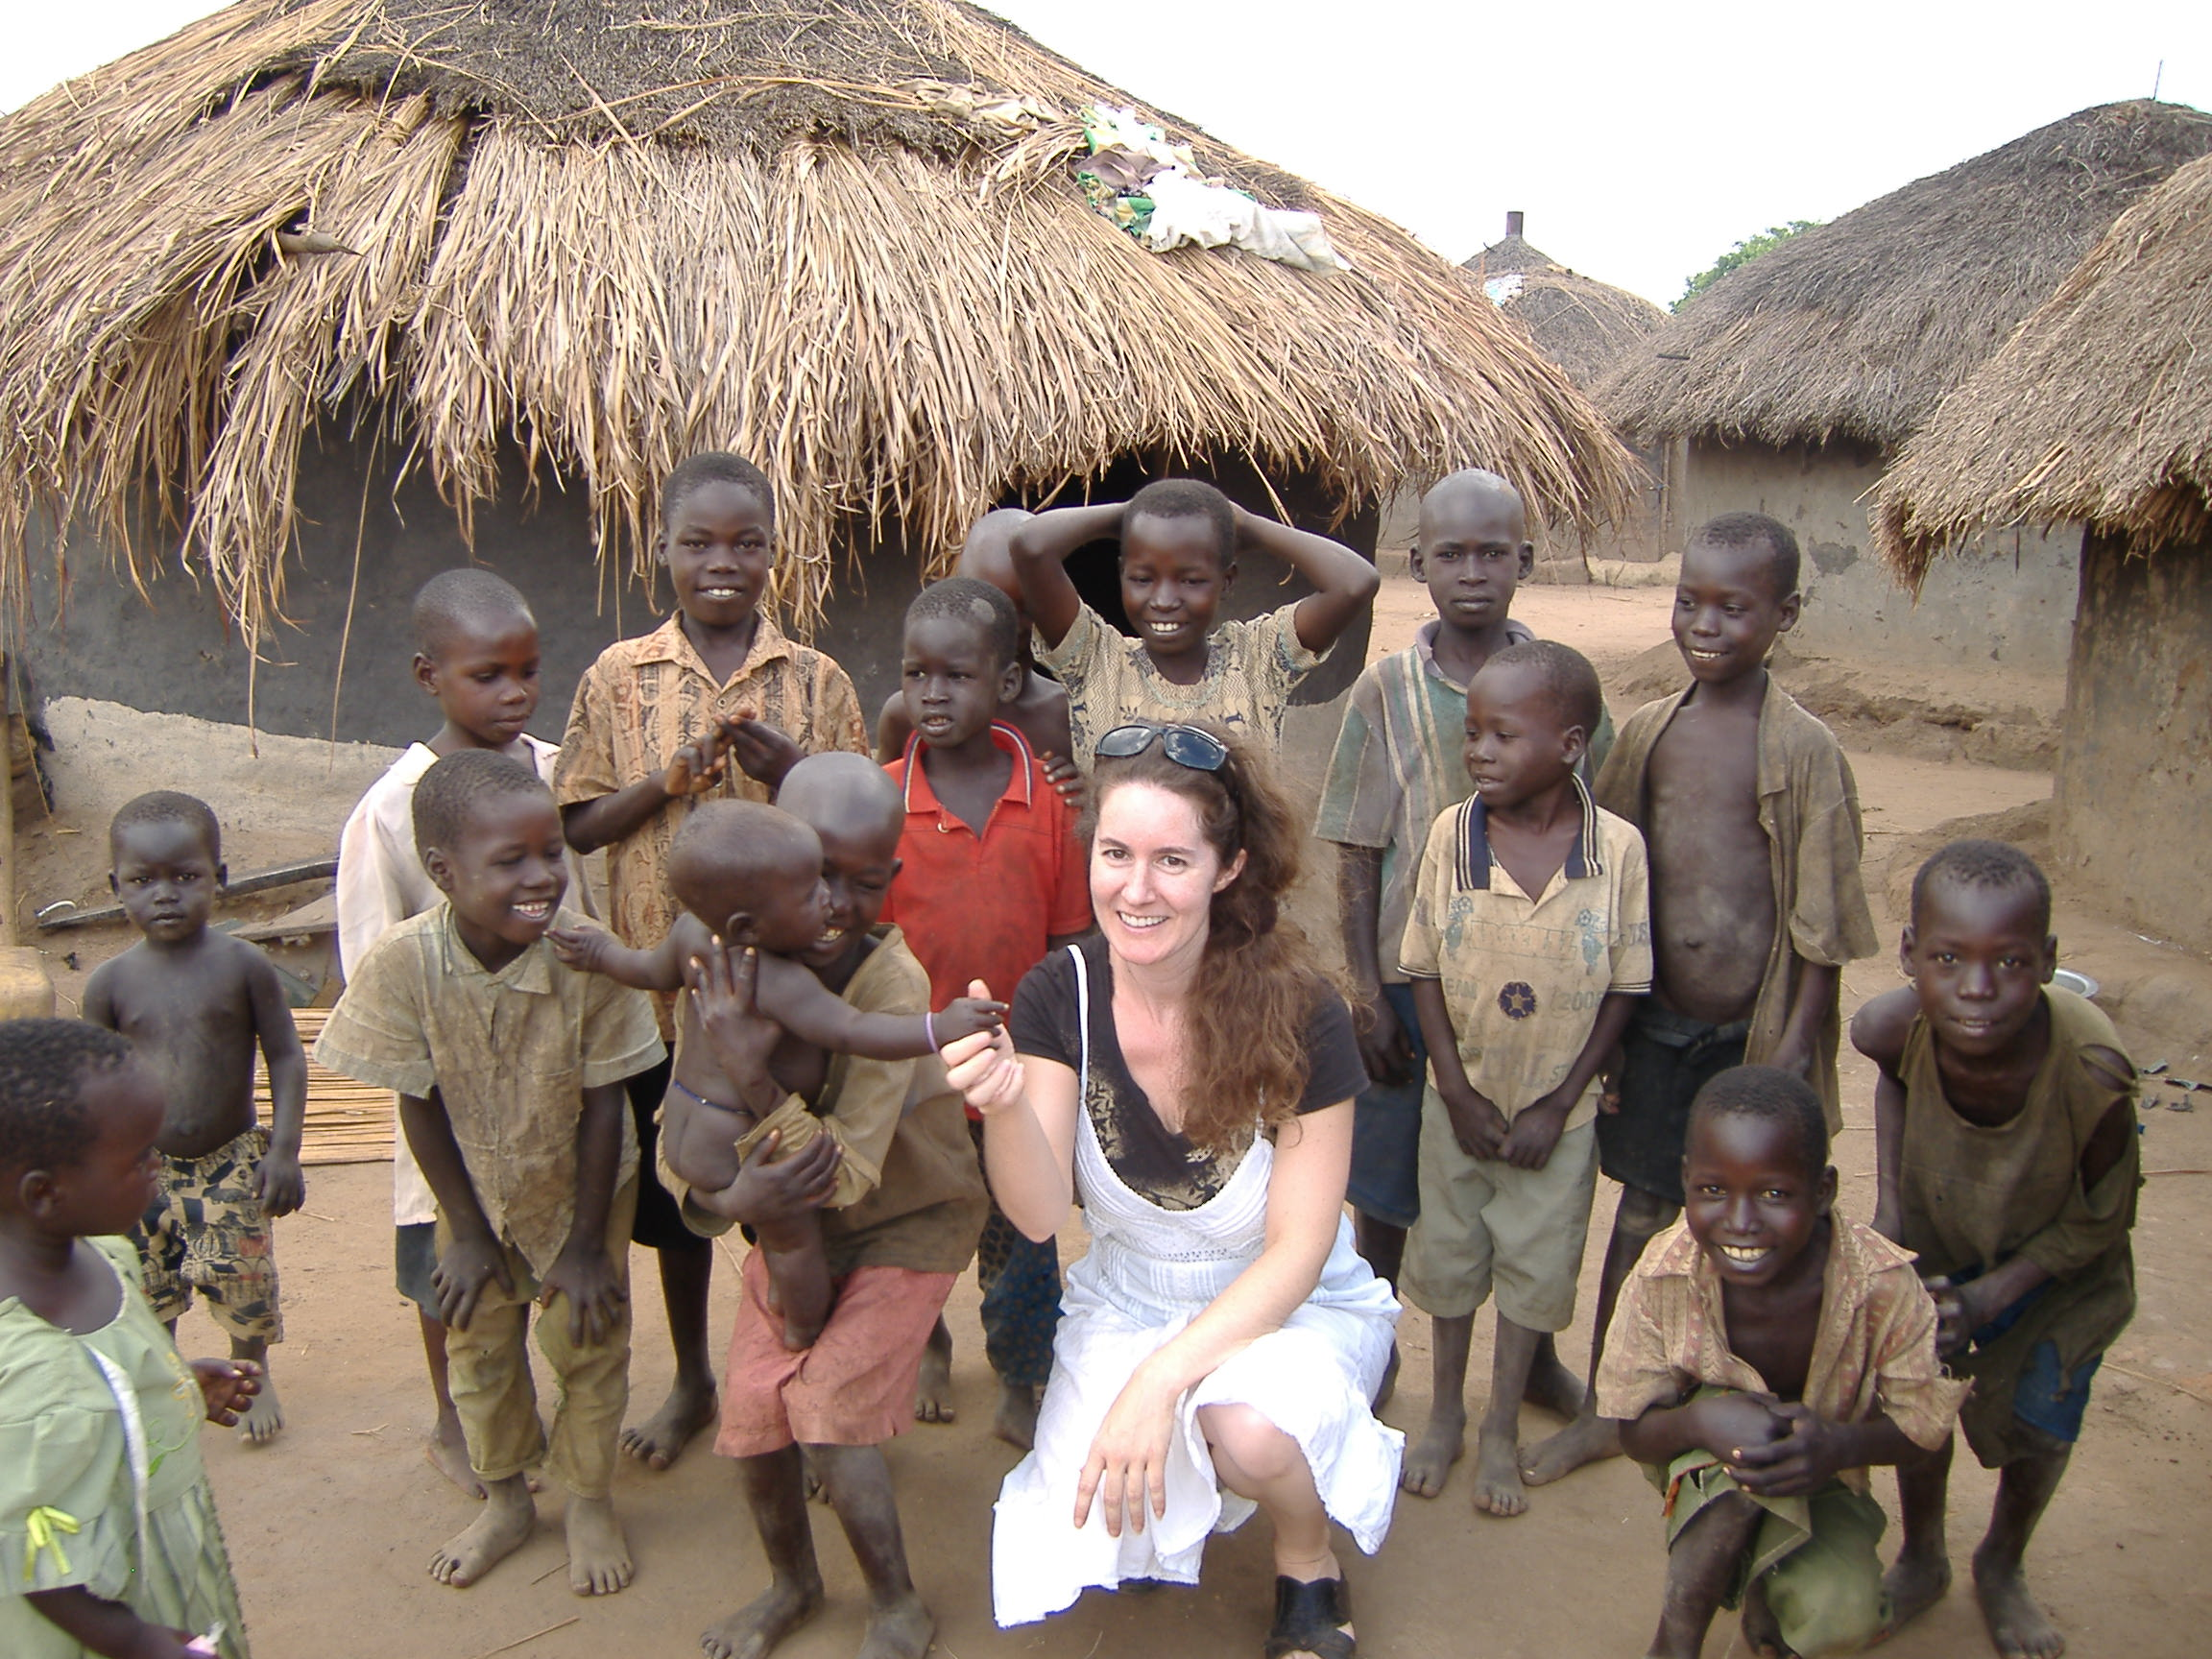 Erin Anastasi with children in northern Uganda (Gulu district) where she worked on a project with MSF/Doctors Without Borders.